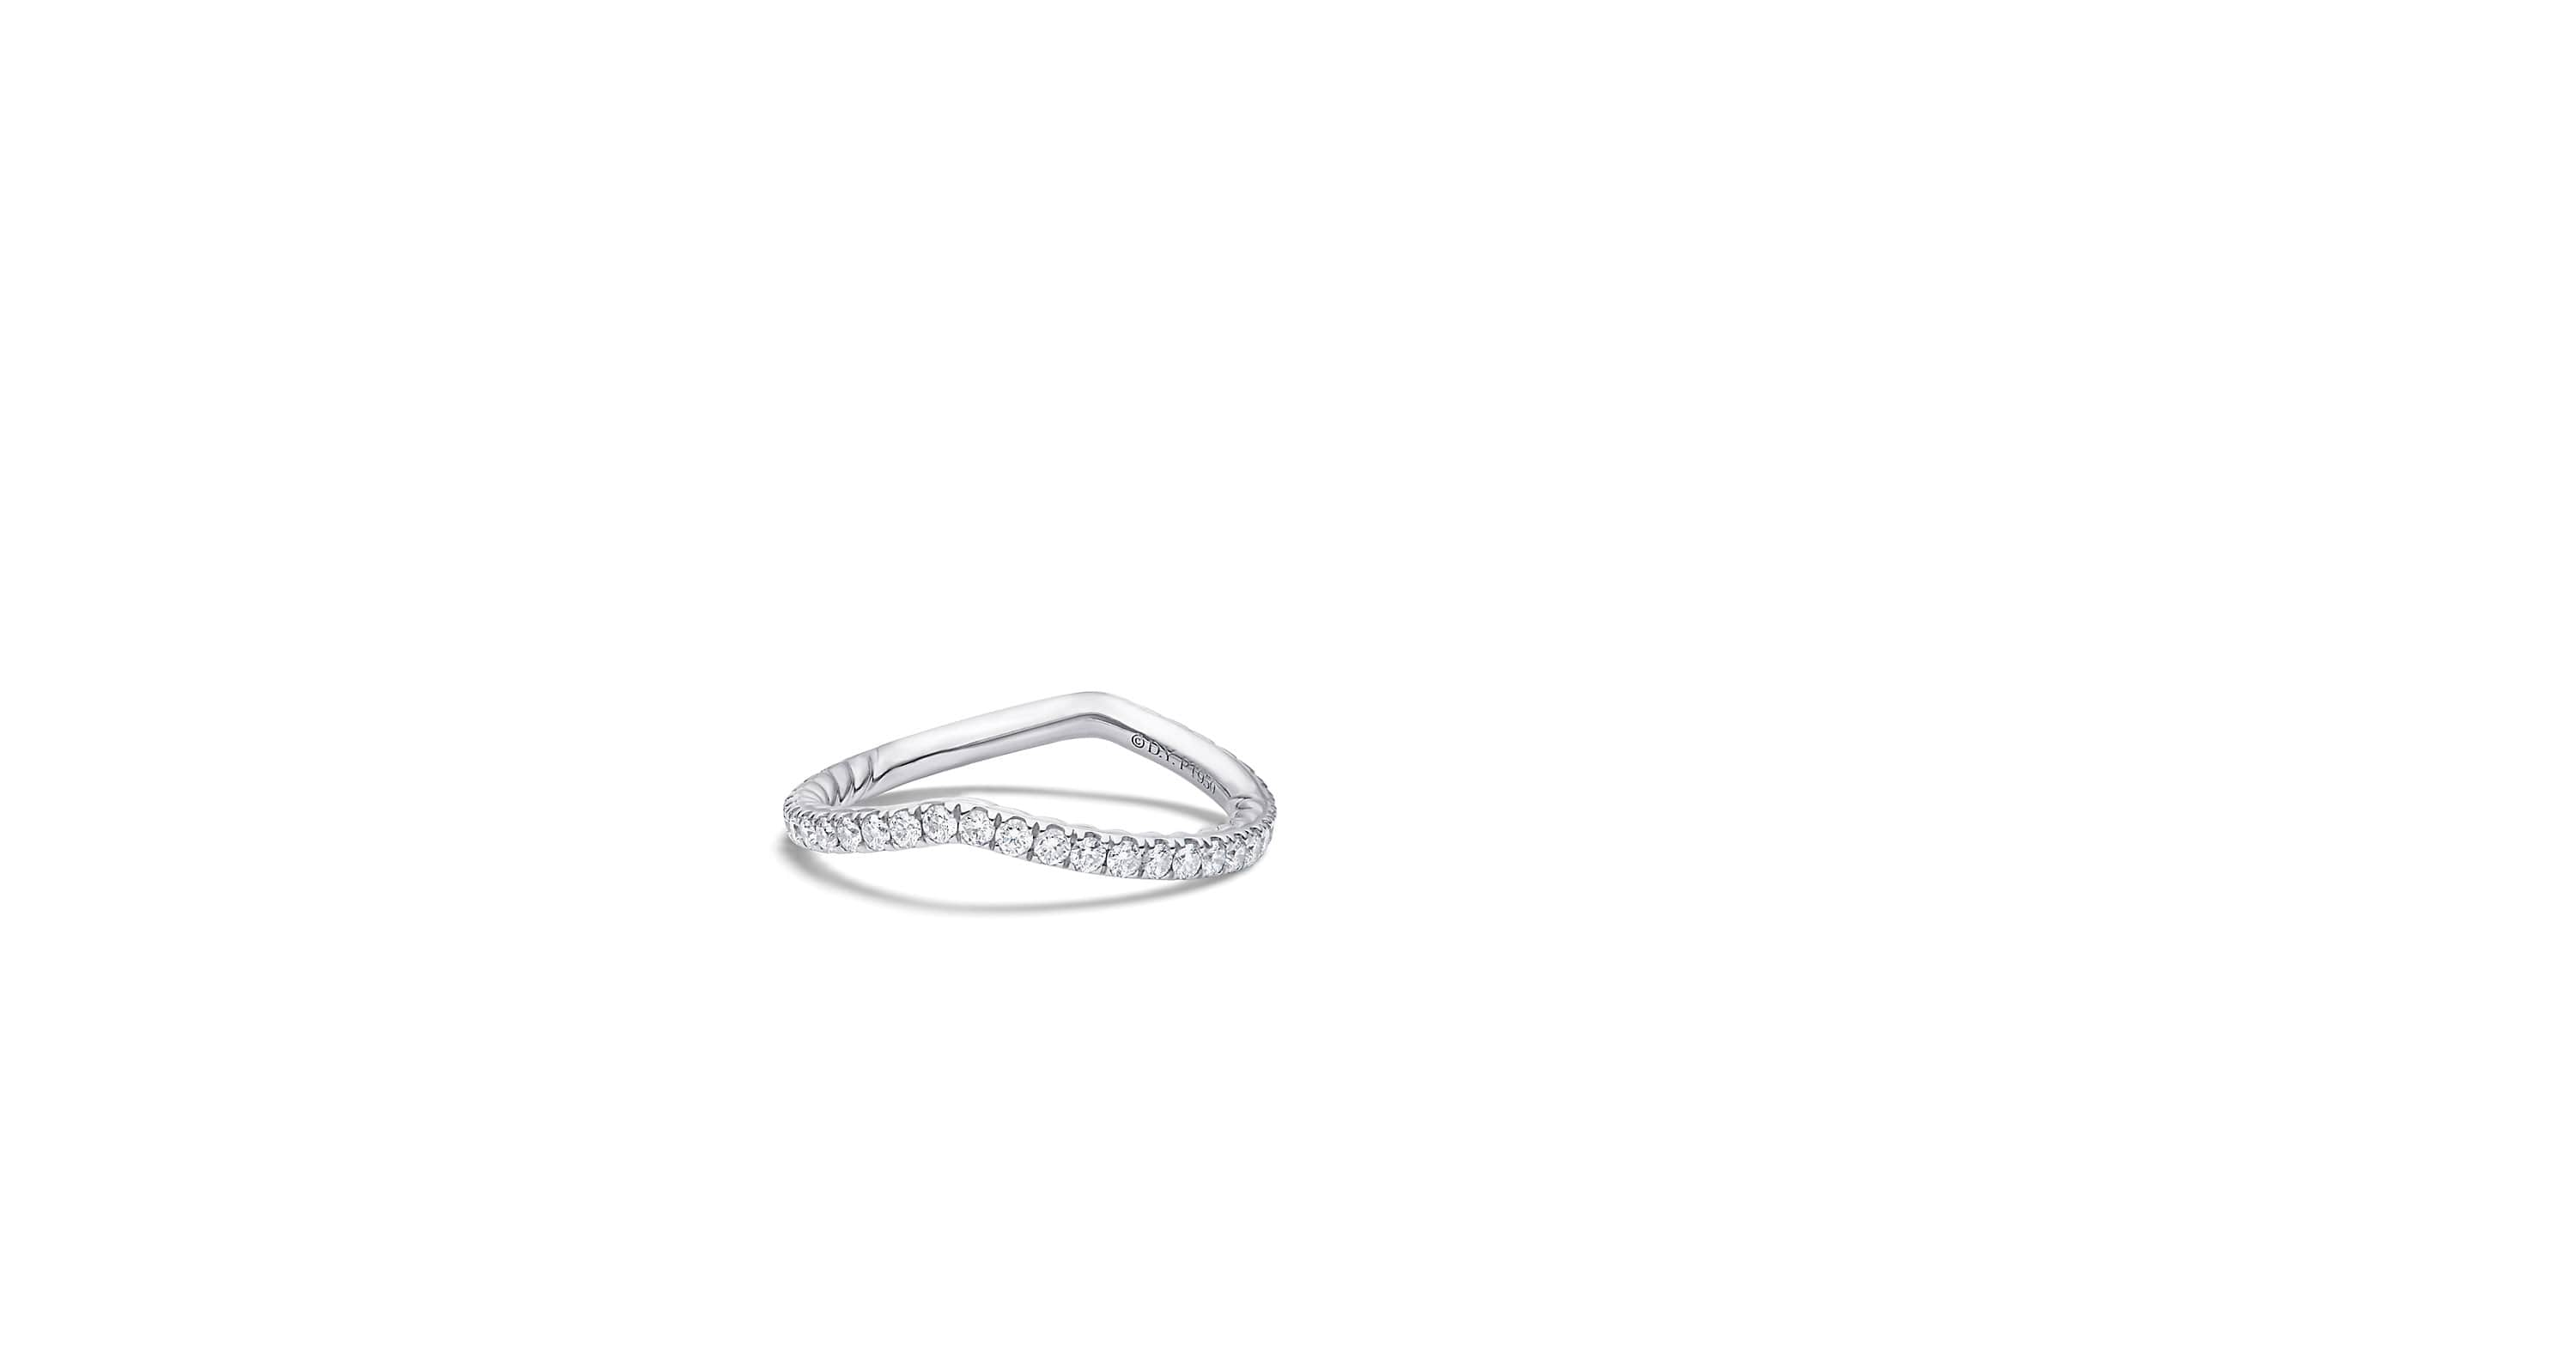 DY Crossover Pave Nesting Wedding Band with Diamonds in Platinum, 1.9mm